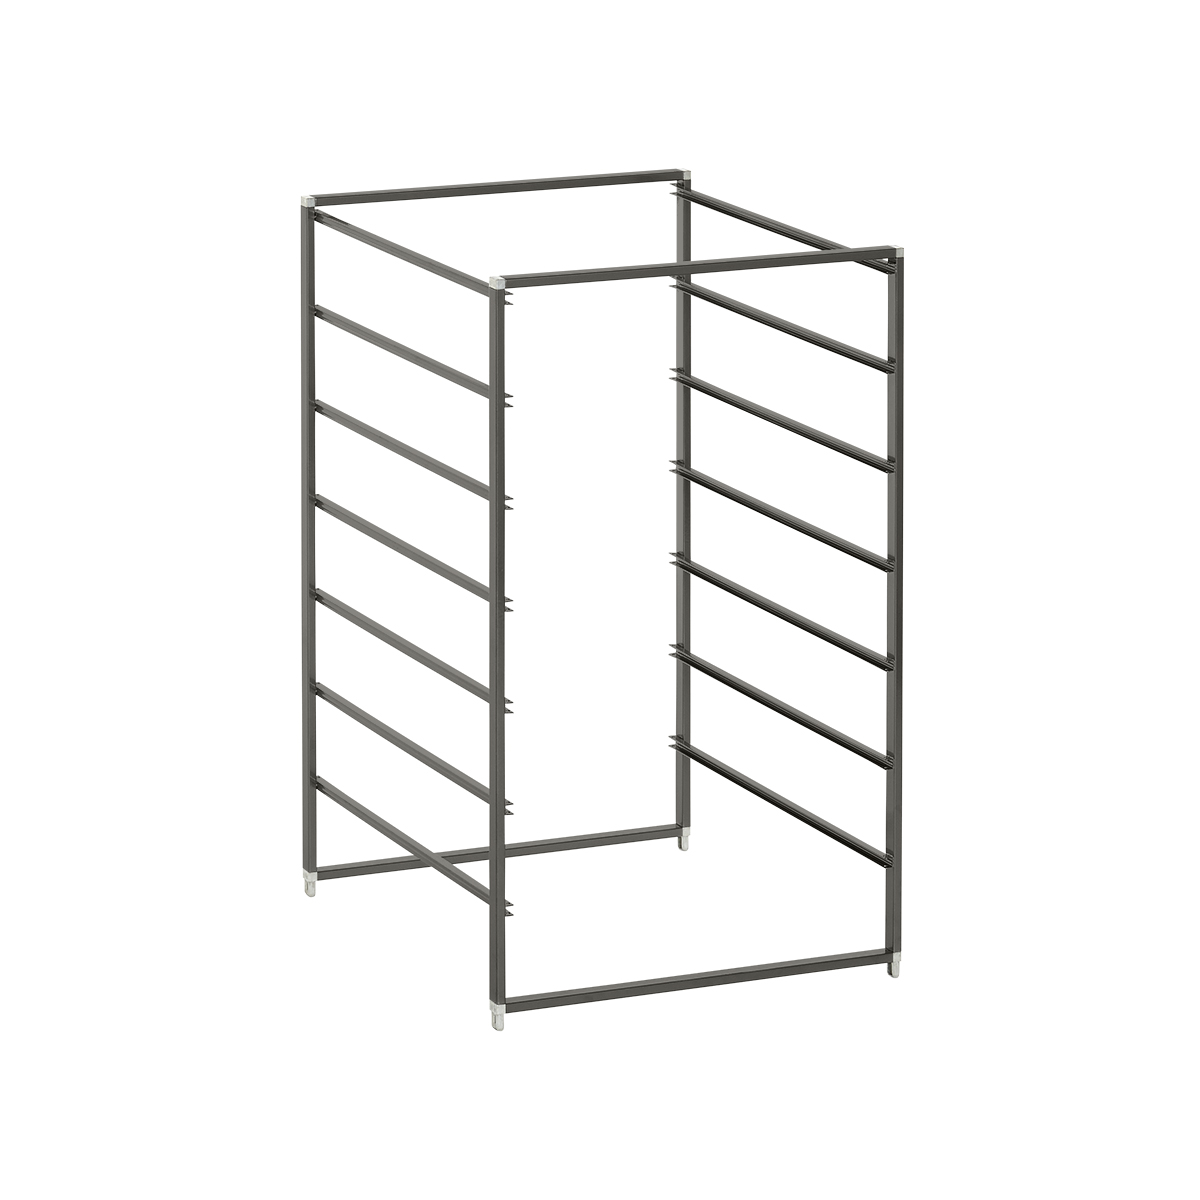 Graphite Elfa Drawer Frames